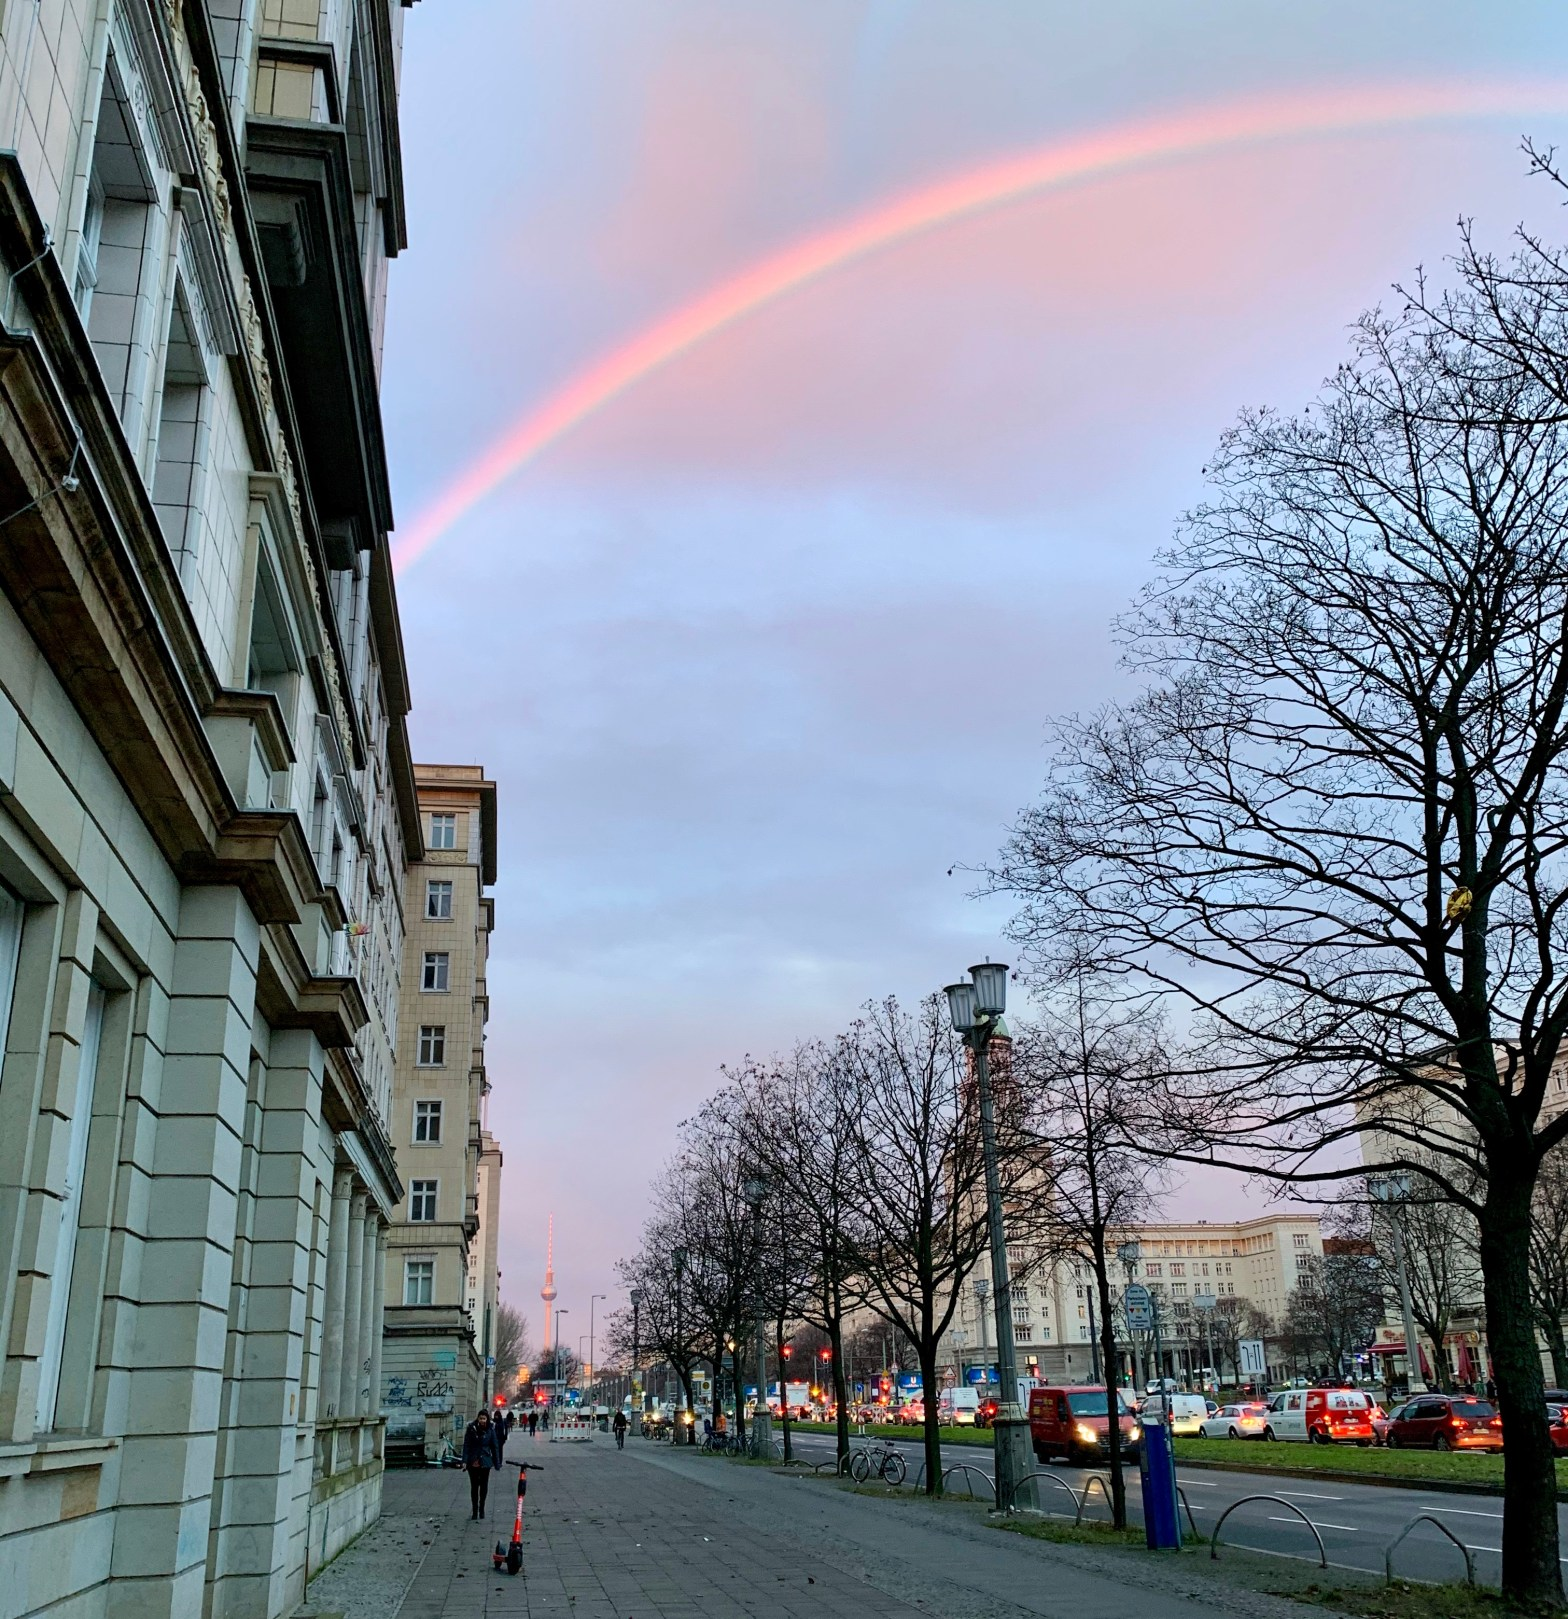 Rainbow at Frankfurter Alle in Berlin